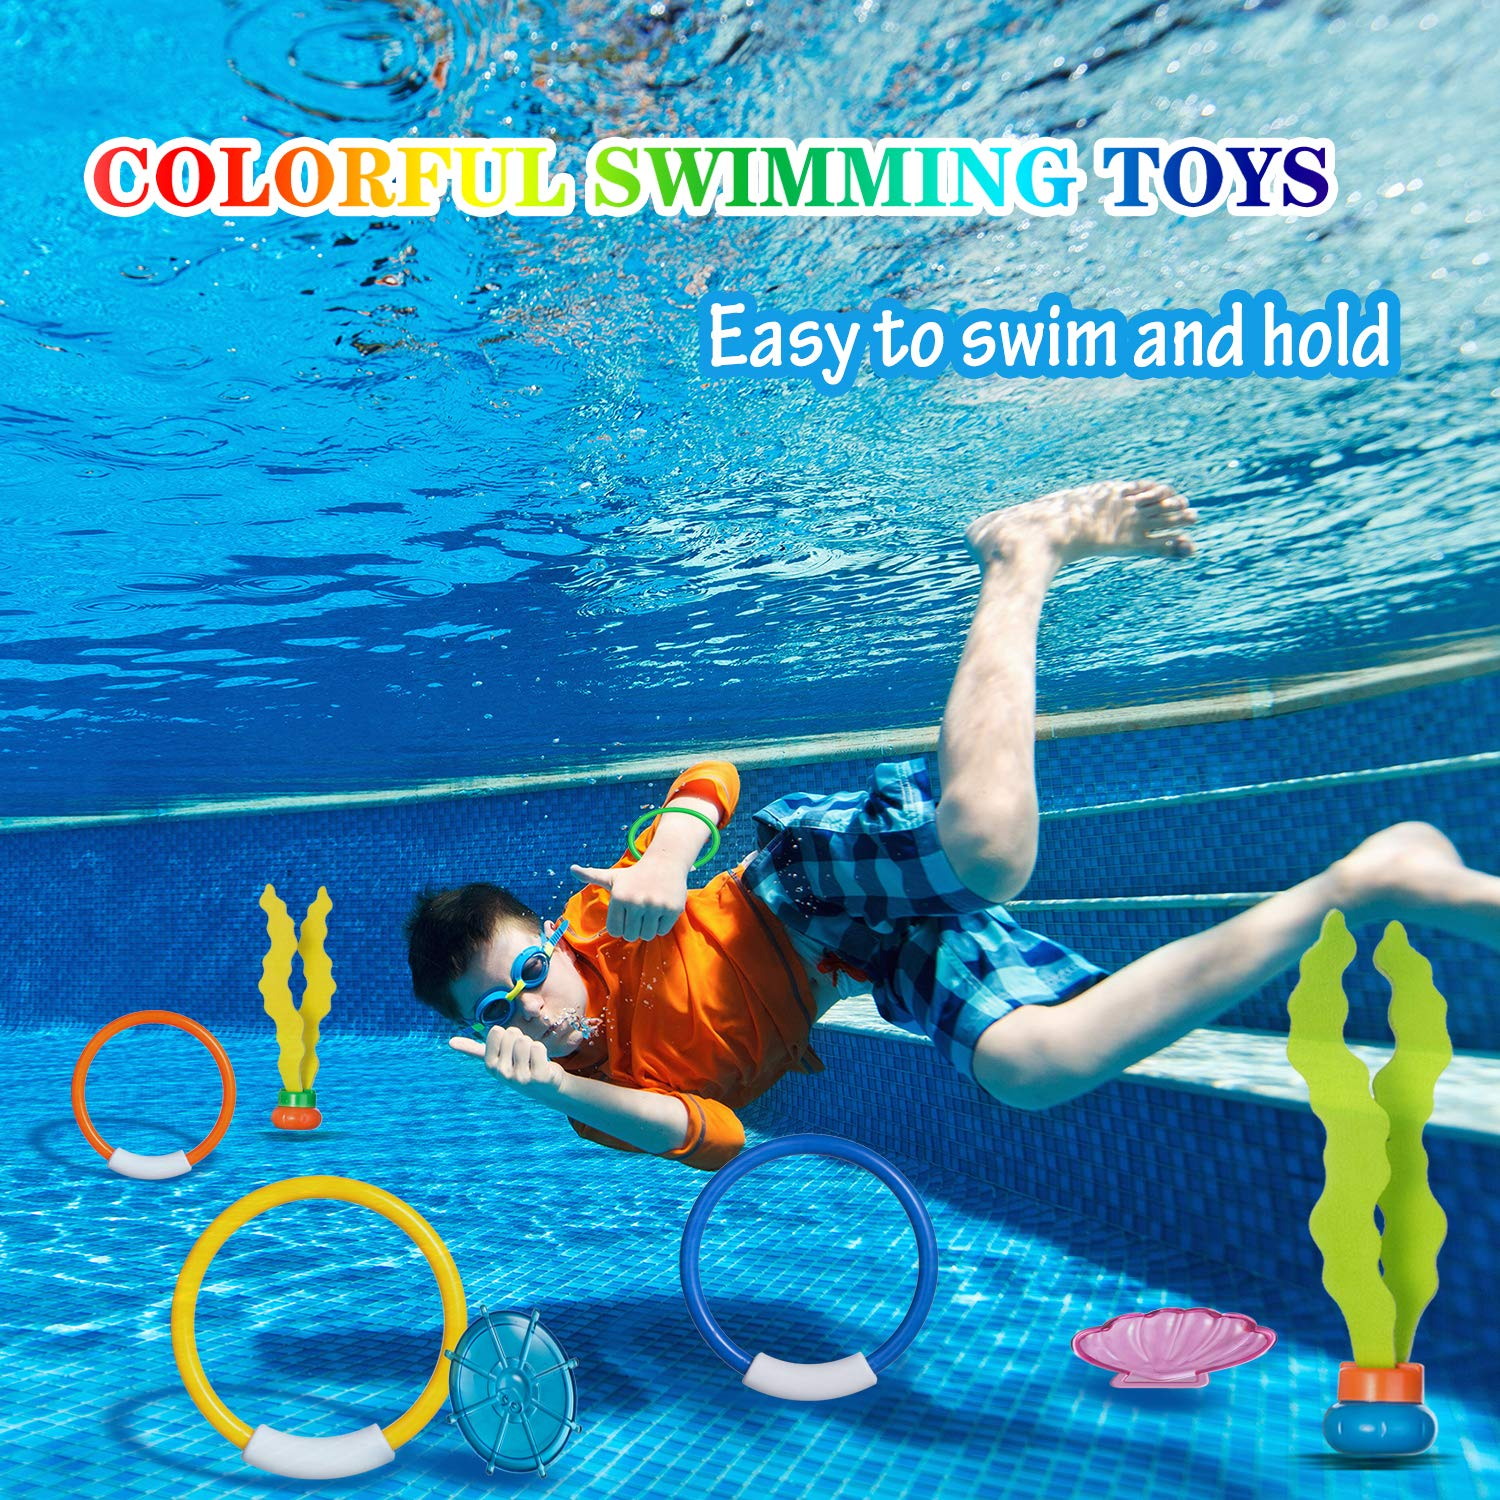 UTTORA Diving Toys Underwater Swimming Pool Toys Diving Game Training Gift for Kids Boys Girls